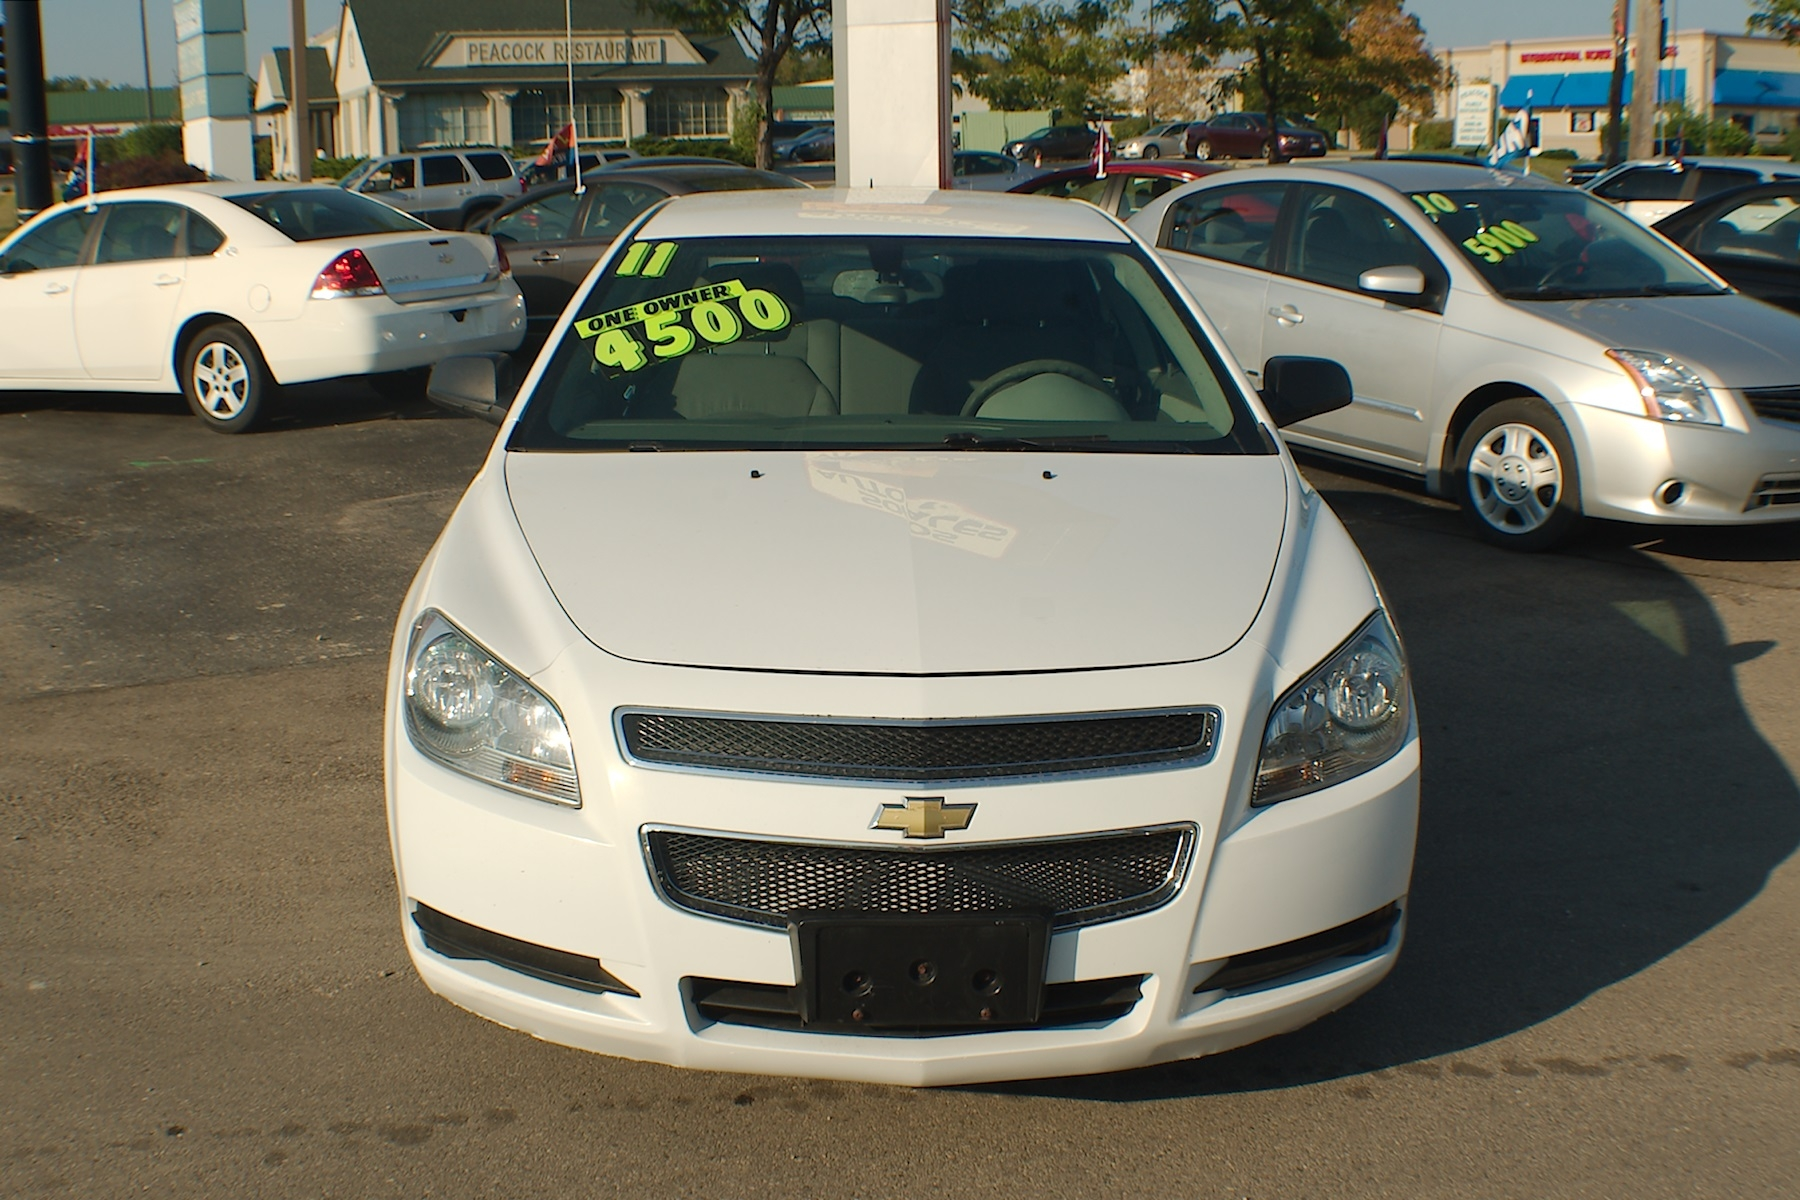 2011 Chevrolet Malibu White Sedan Used Car Sale Gurnee Kenosha Mchenry Chicago Illinois